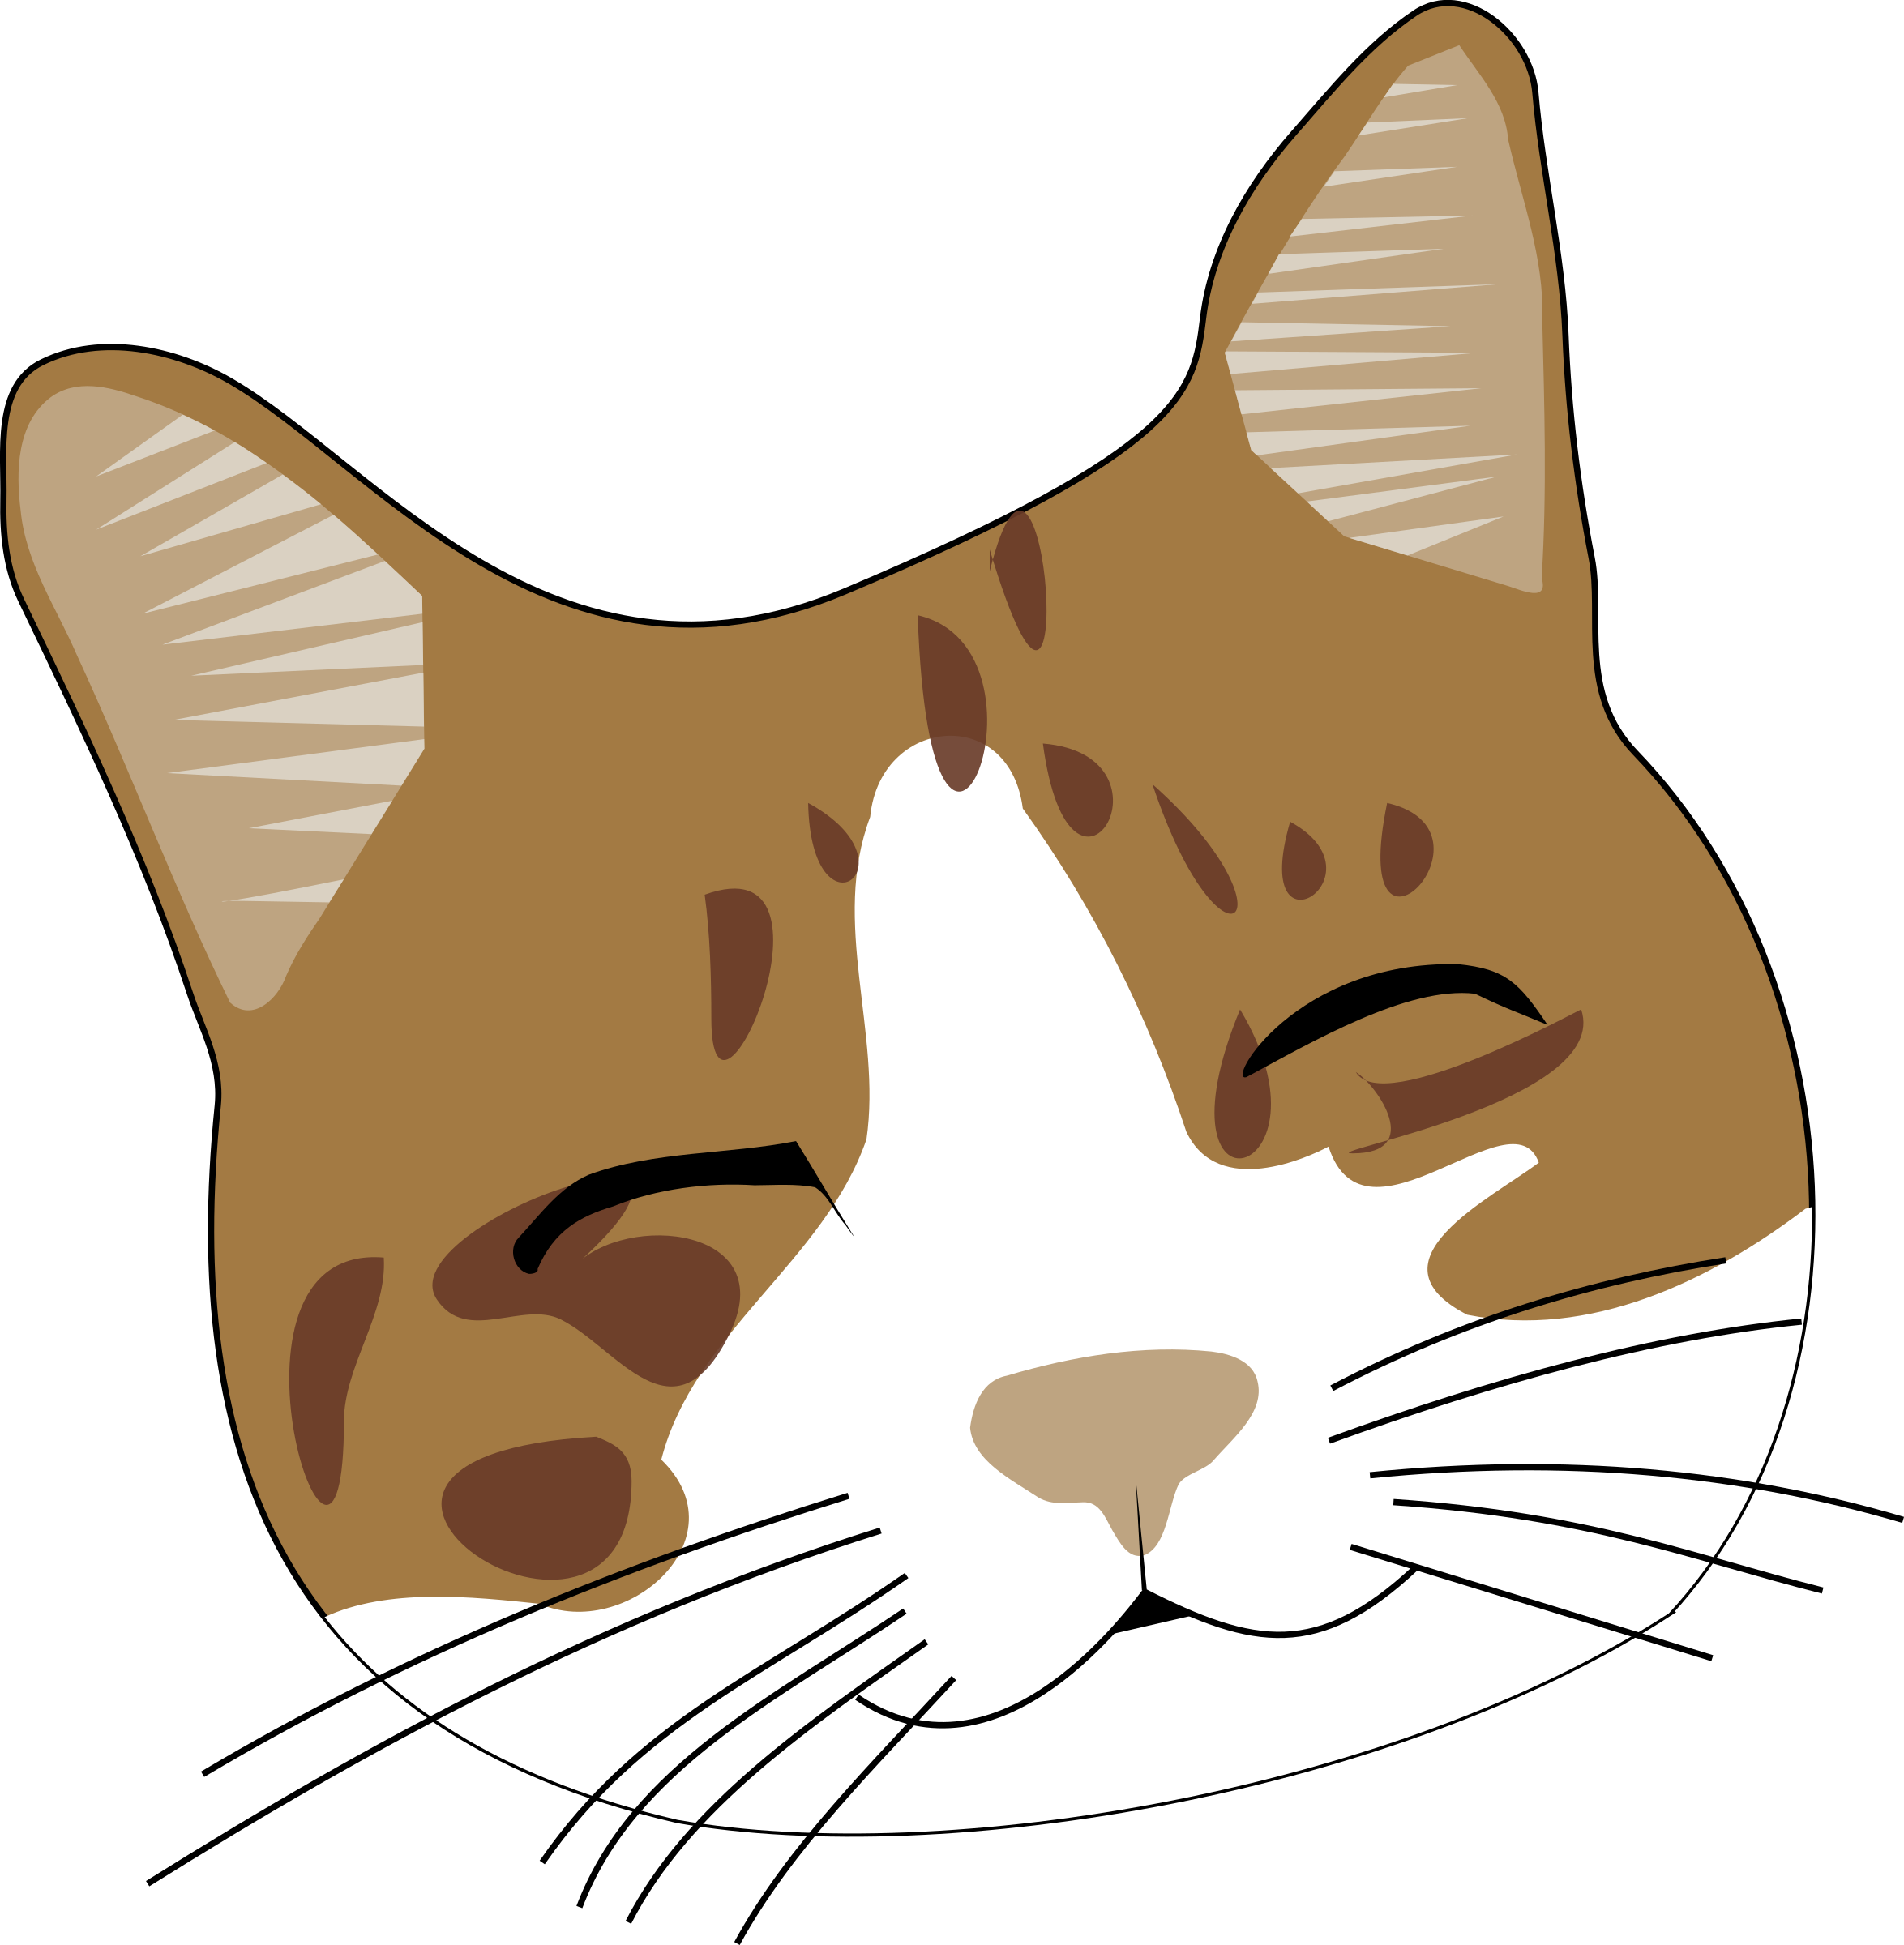 Clipart take care cat svg freeuse 28+ Collection of Cat Face Clipart Png | High quality, free cliparts ... svg freeuse